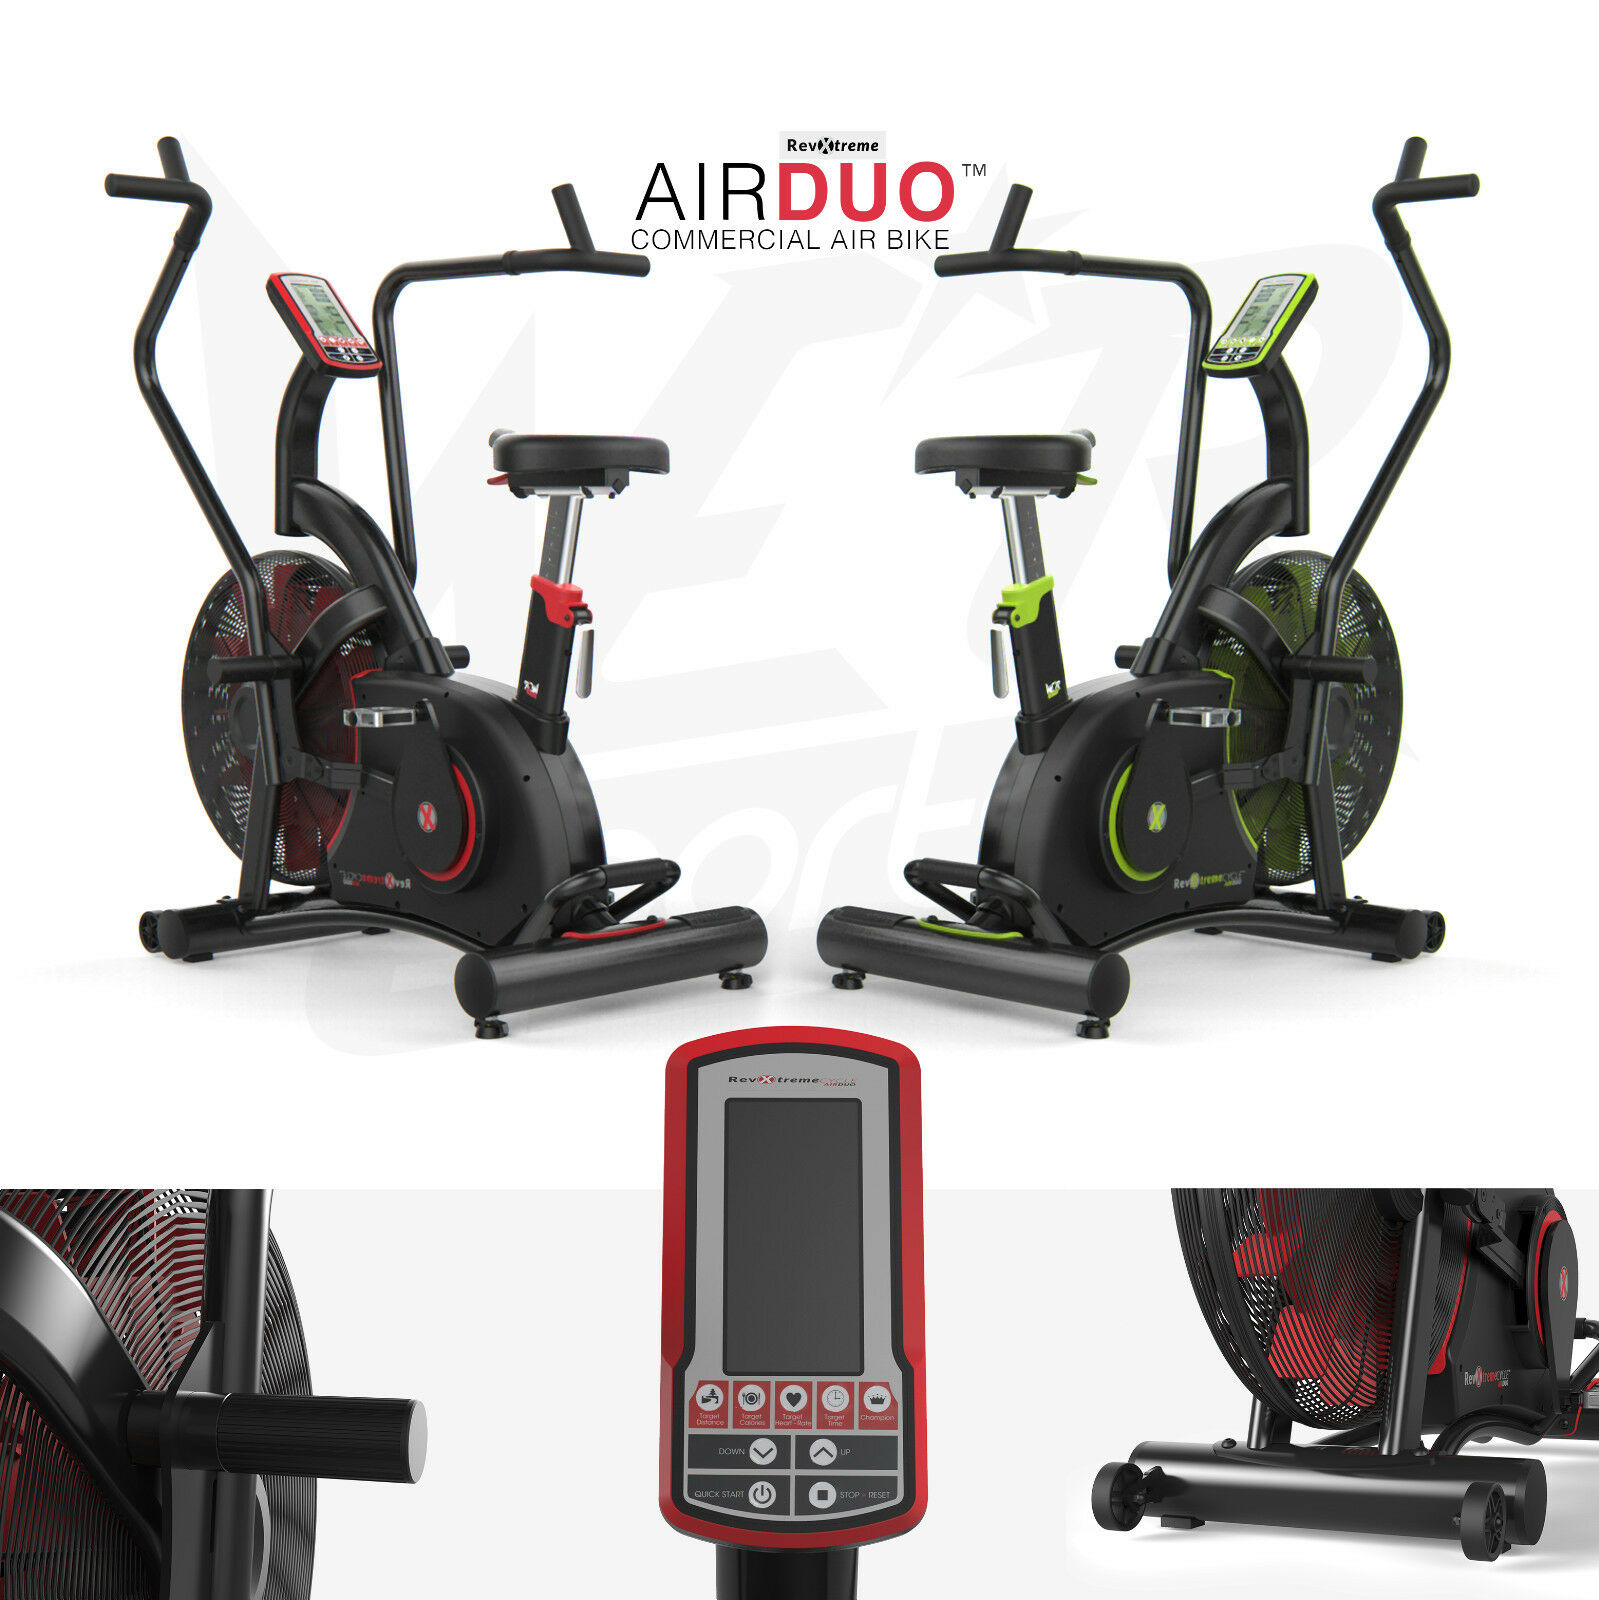 AirDuo Air Assault Exercise Bike Cardio Machine Fitness Cycle HeavyDuty MMA Bike